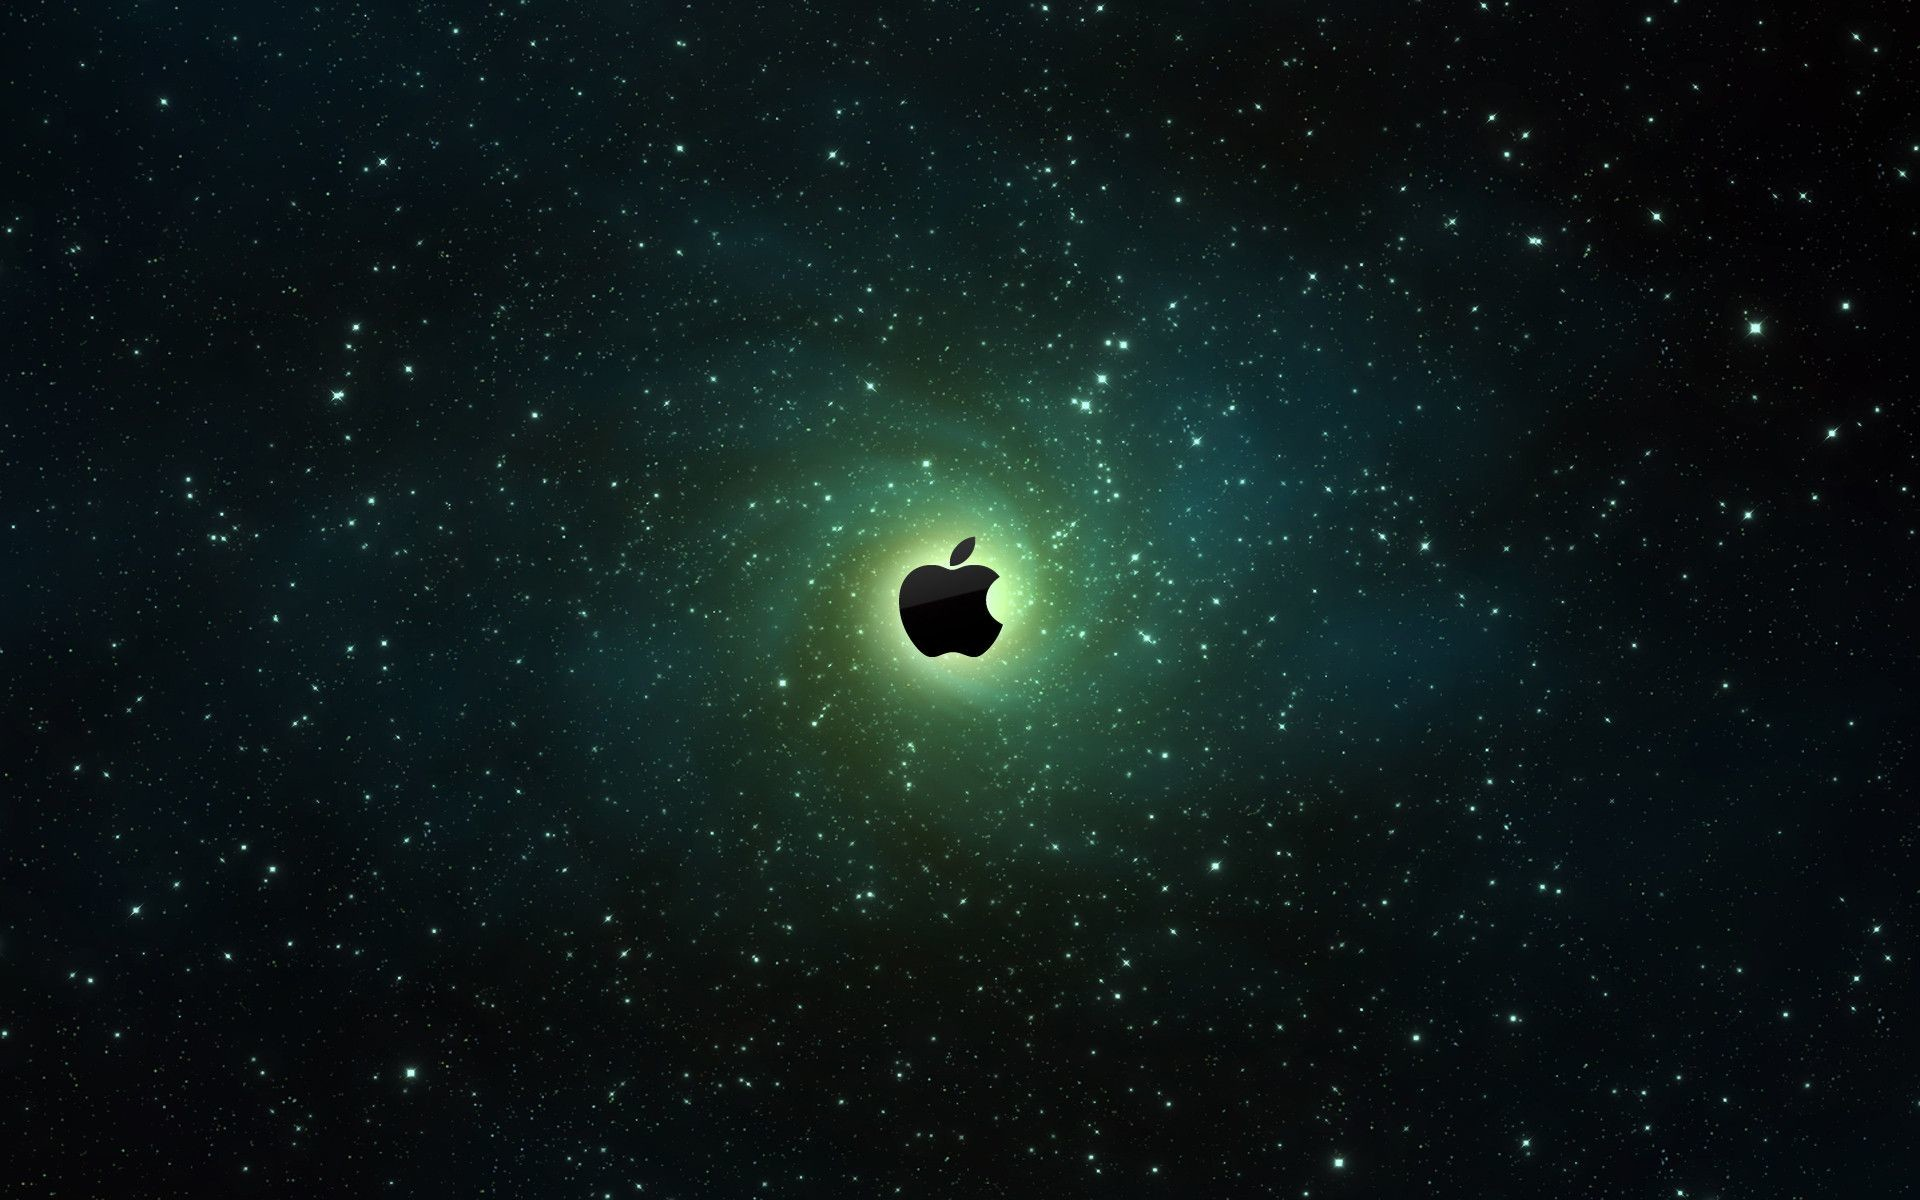 apple_galaxy.jpg